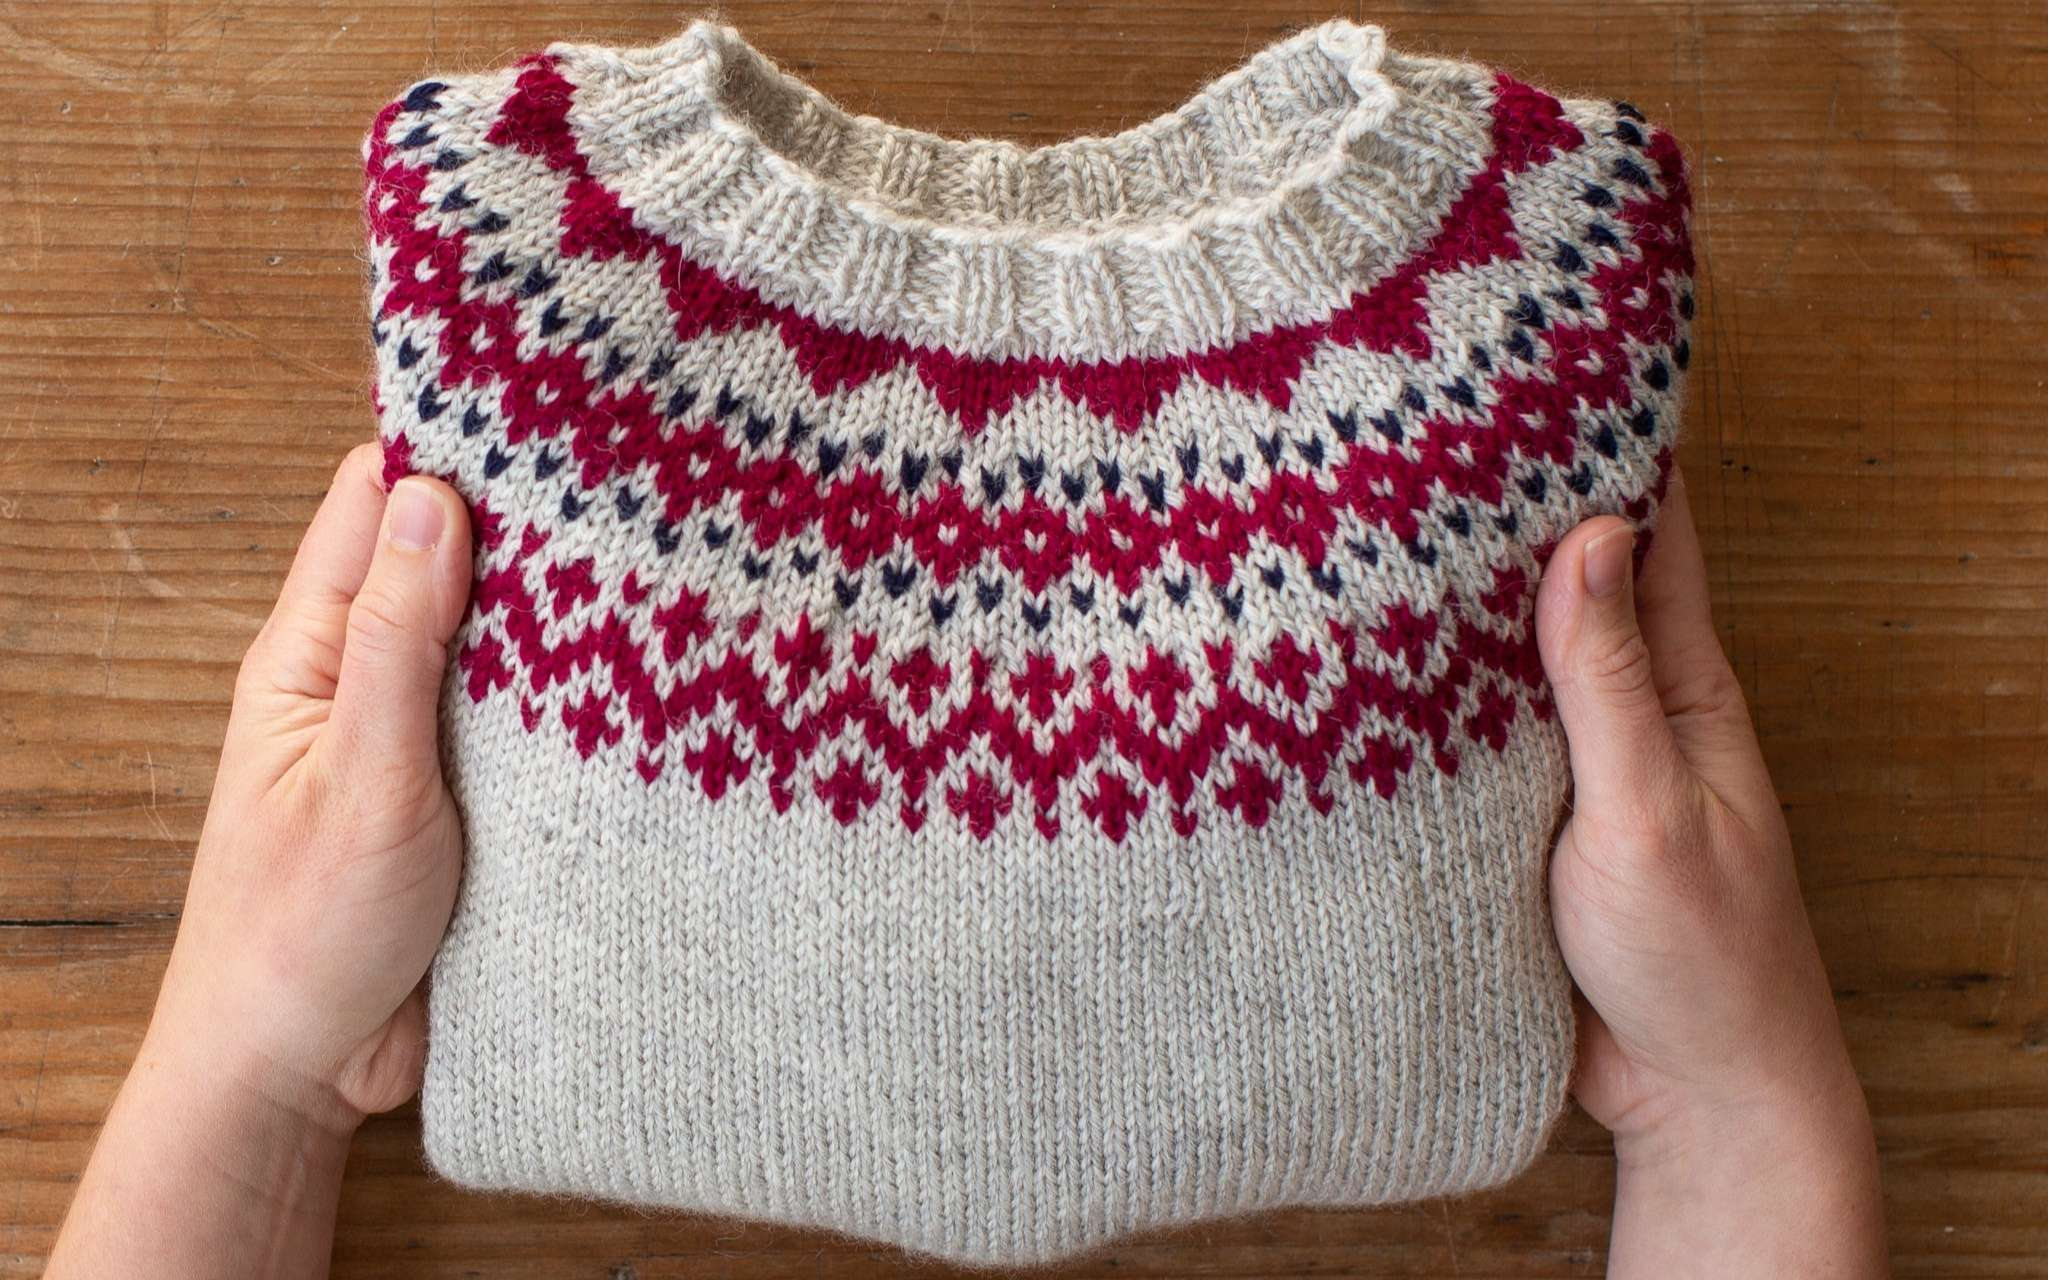 Two hands hold a folded sweater over a wooden surface. The sweater is pale grey with a pink and navy colourwork pattern around the yoke.